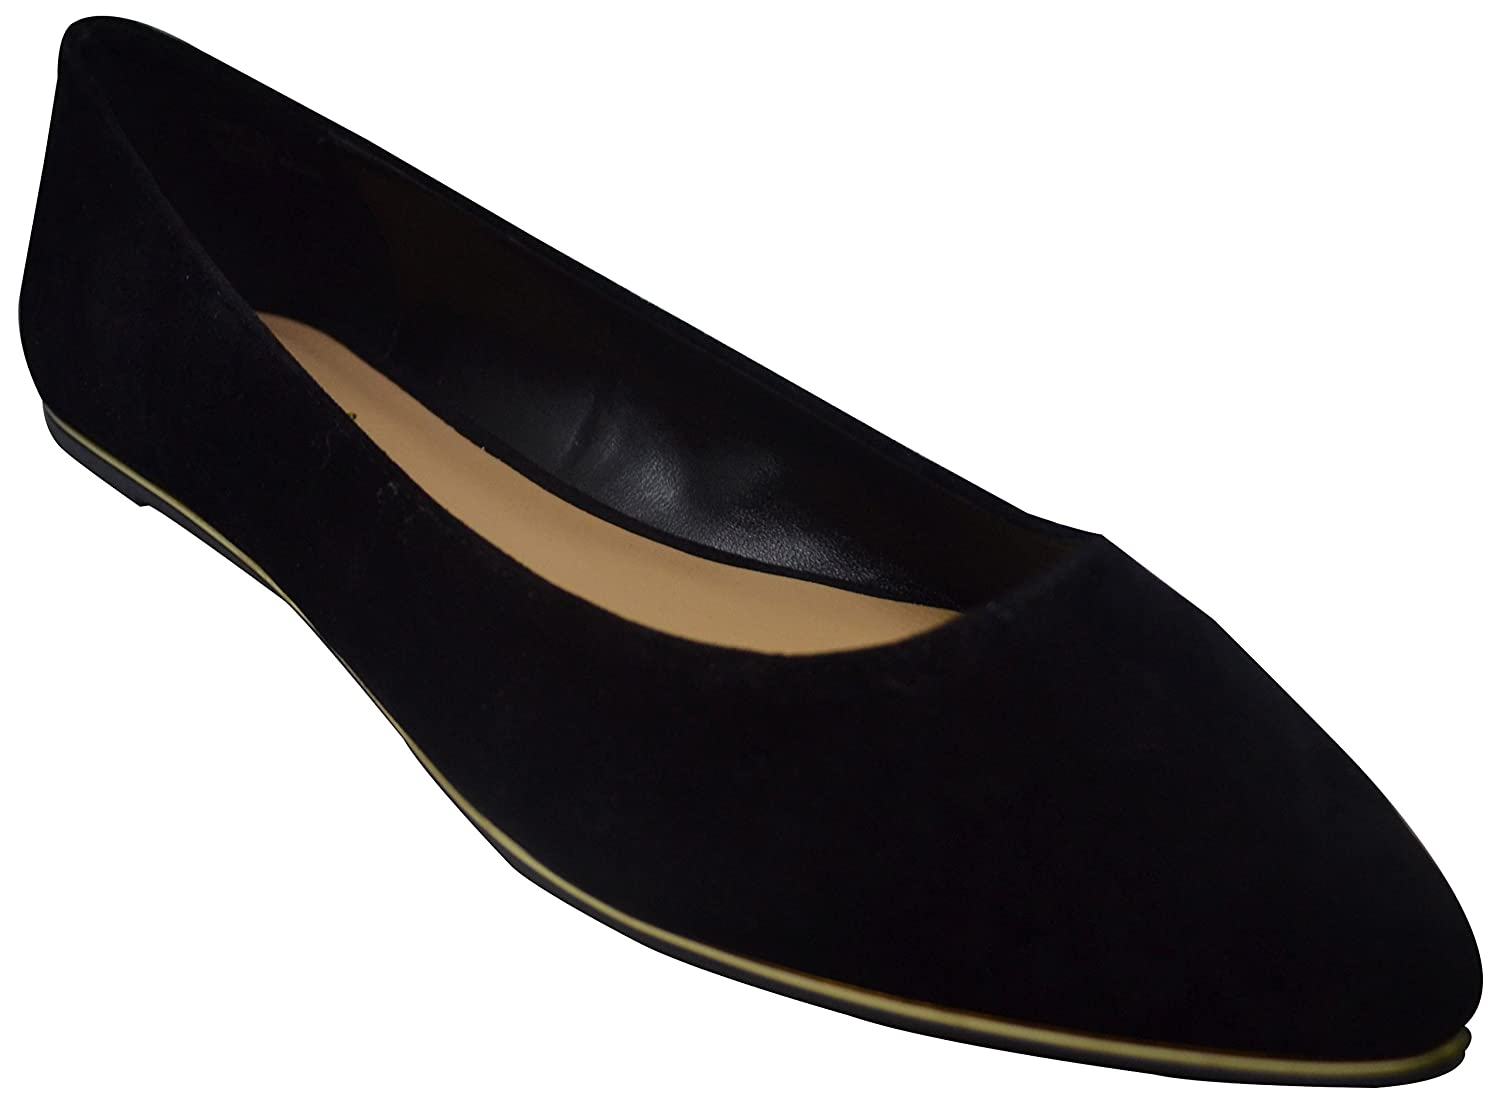 BAMBOO Confess-03S Womens Pointed Toe Flats Black Su Size 6.5